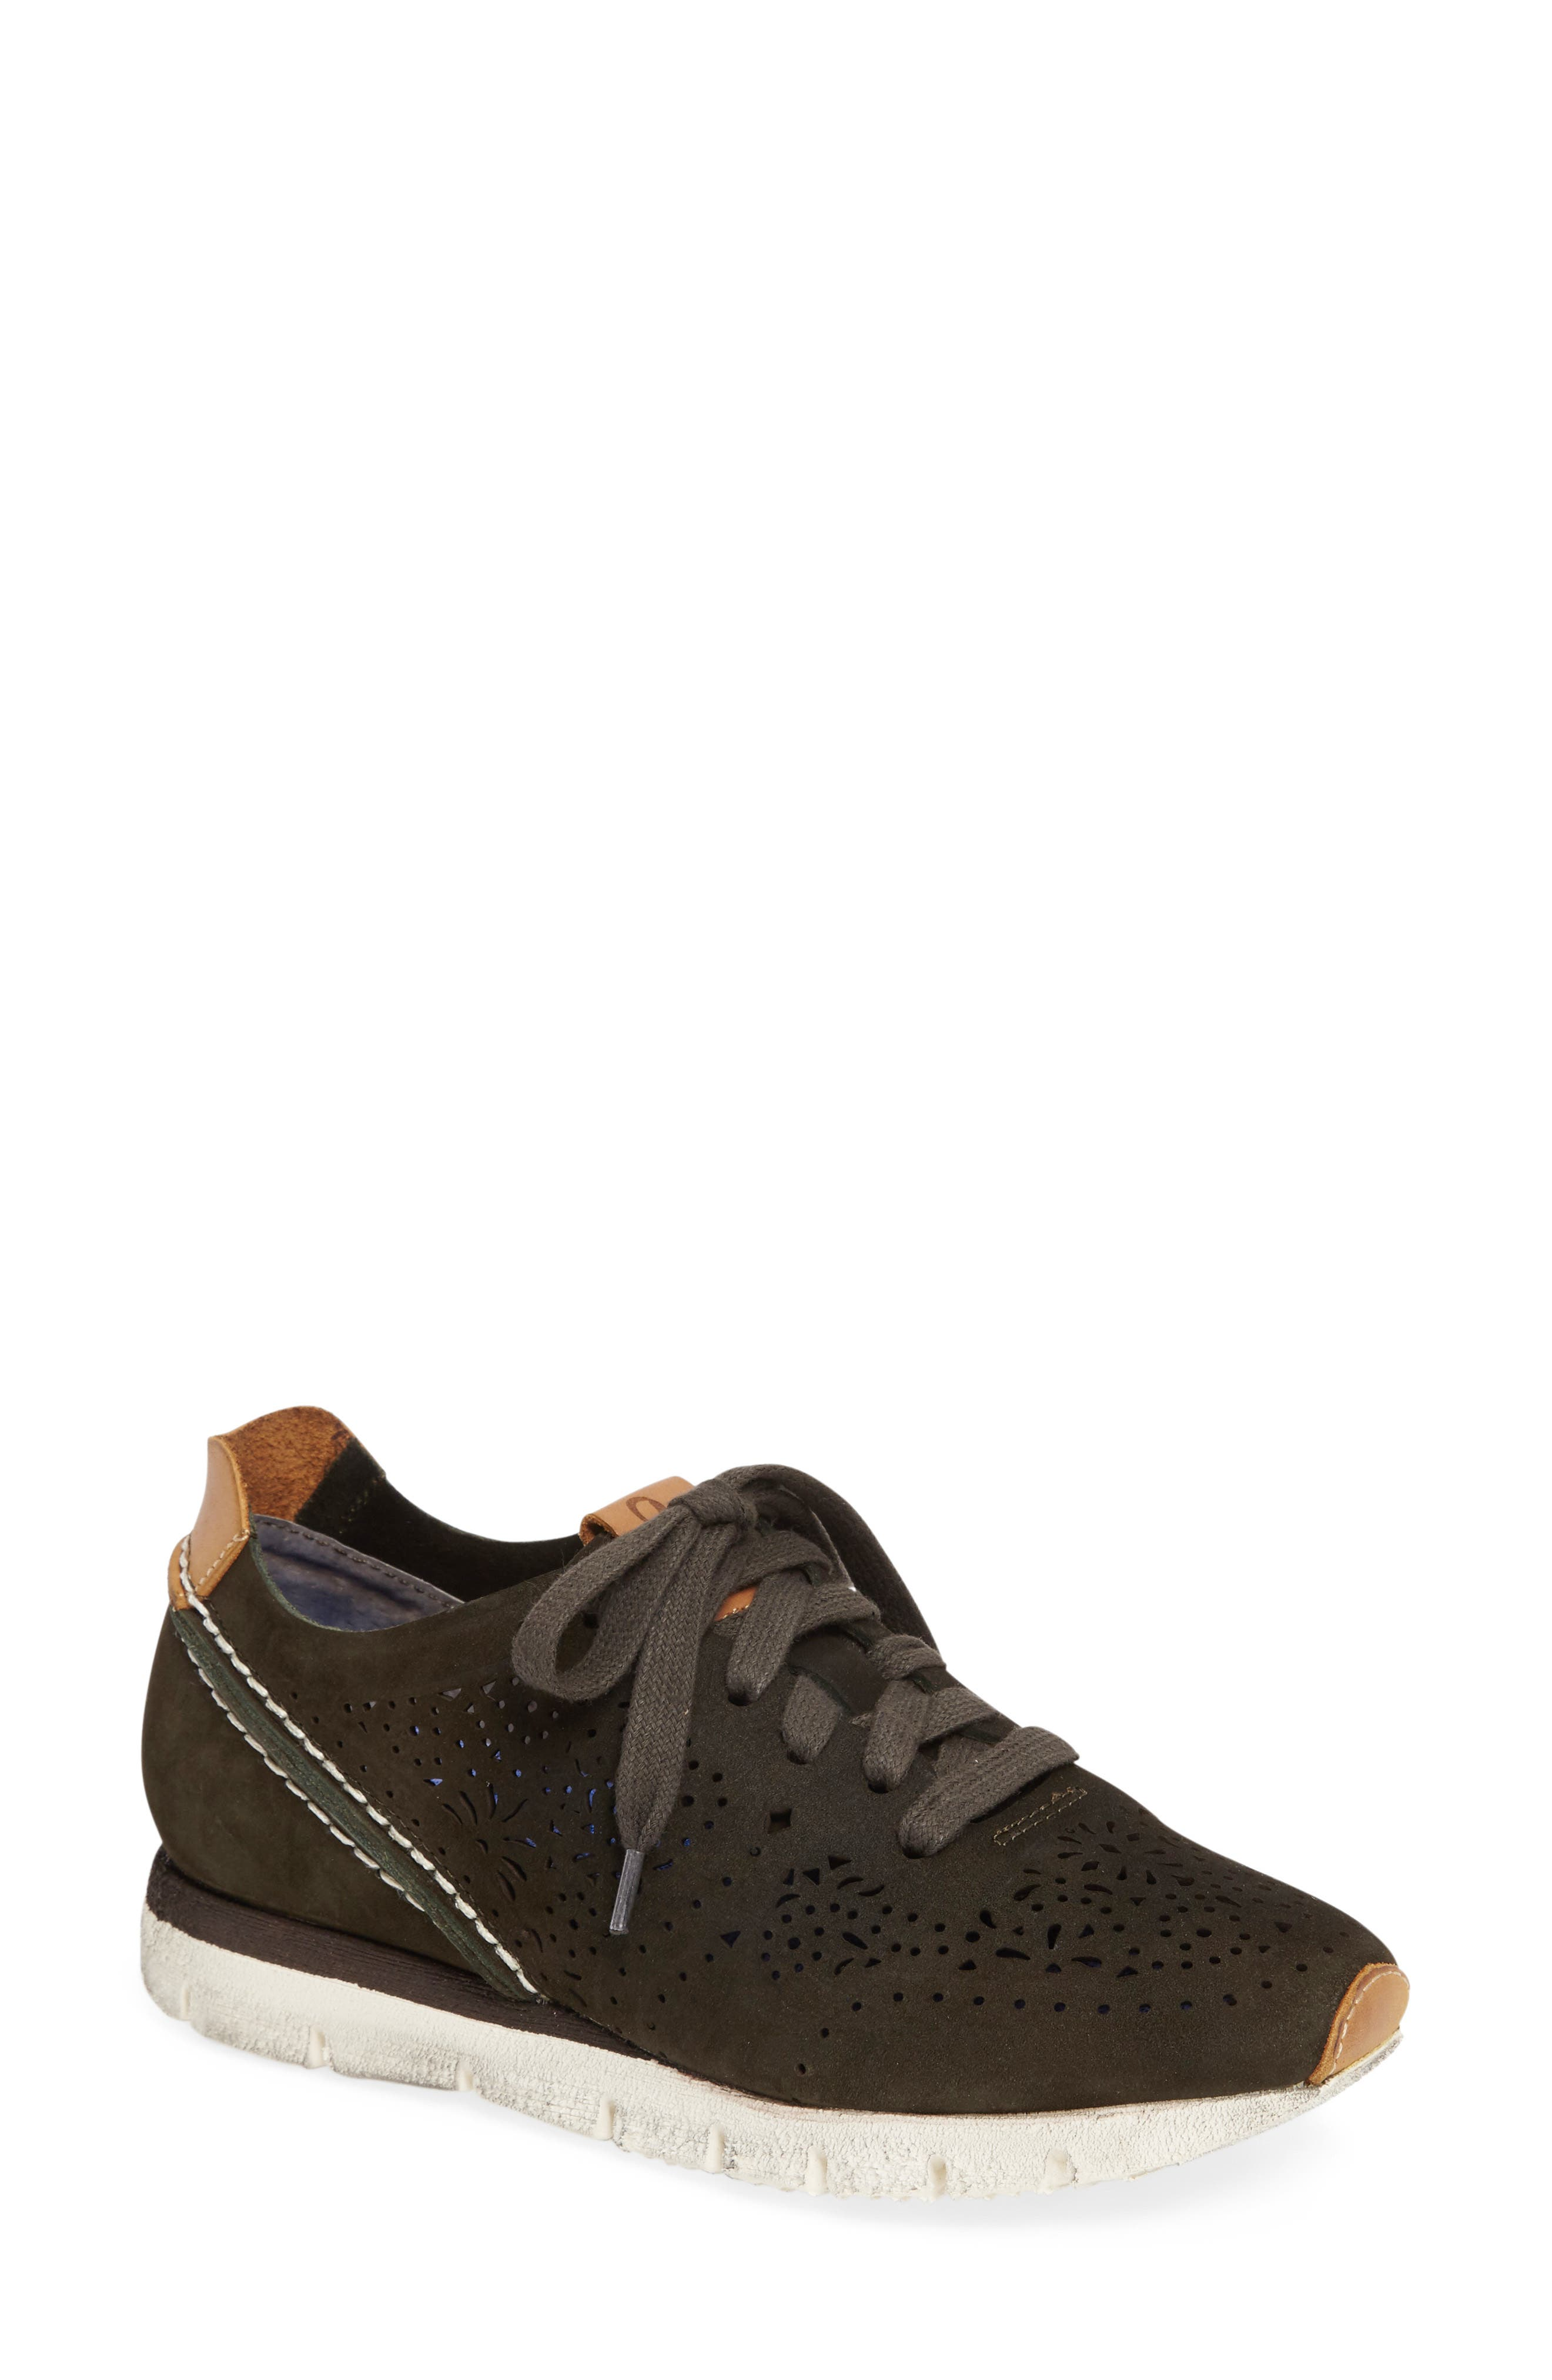 Khora Sneaker,                         Main,                         color, DARK GREEN LEATHER